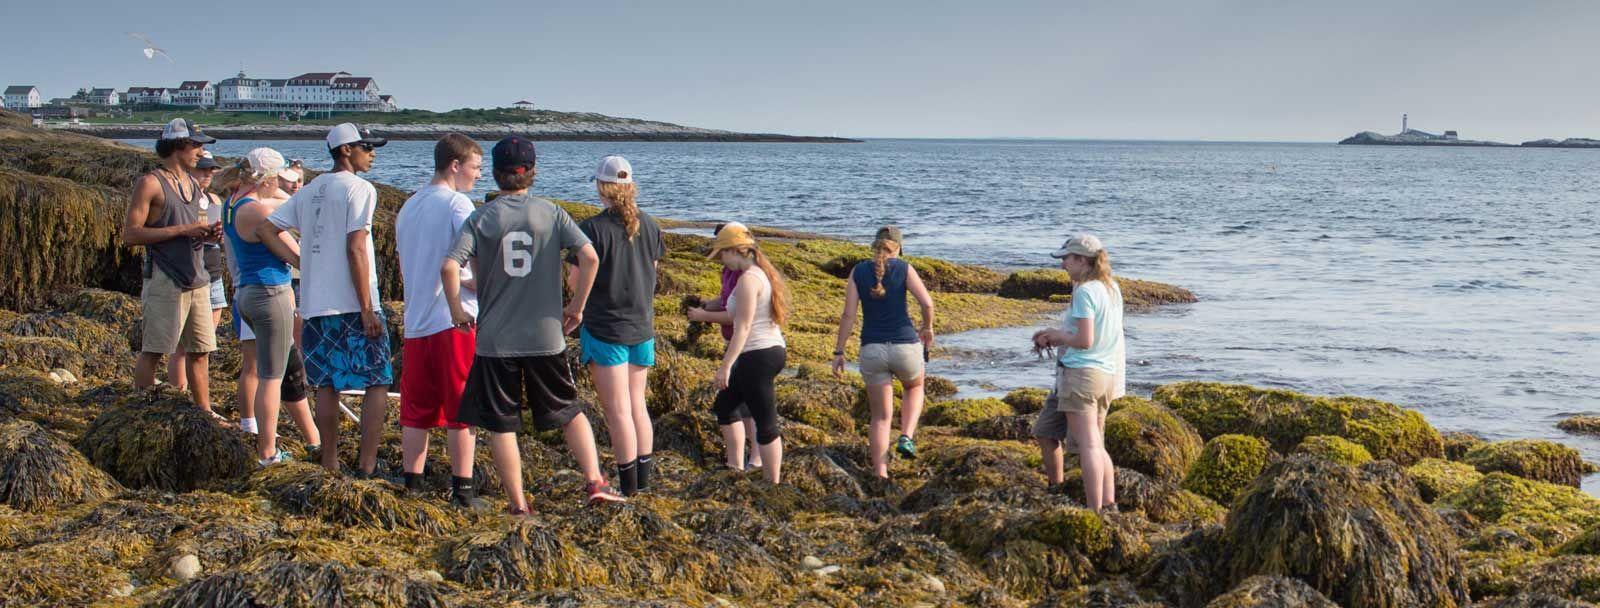 UNH incoming first-year students at the Isles of Shoals